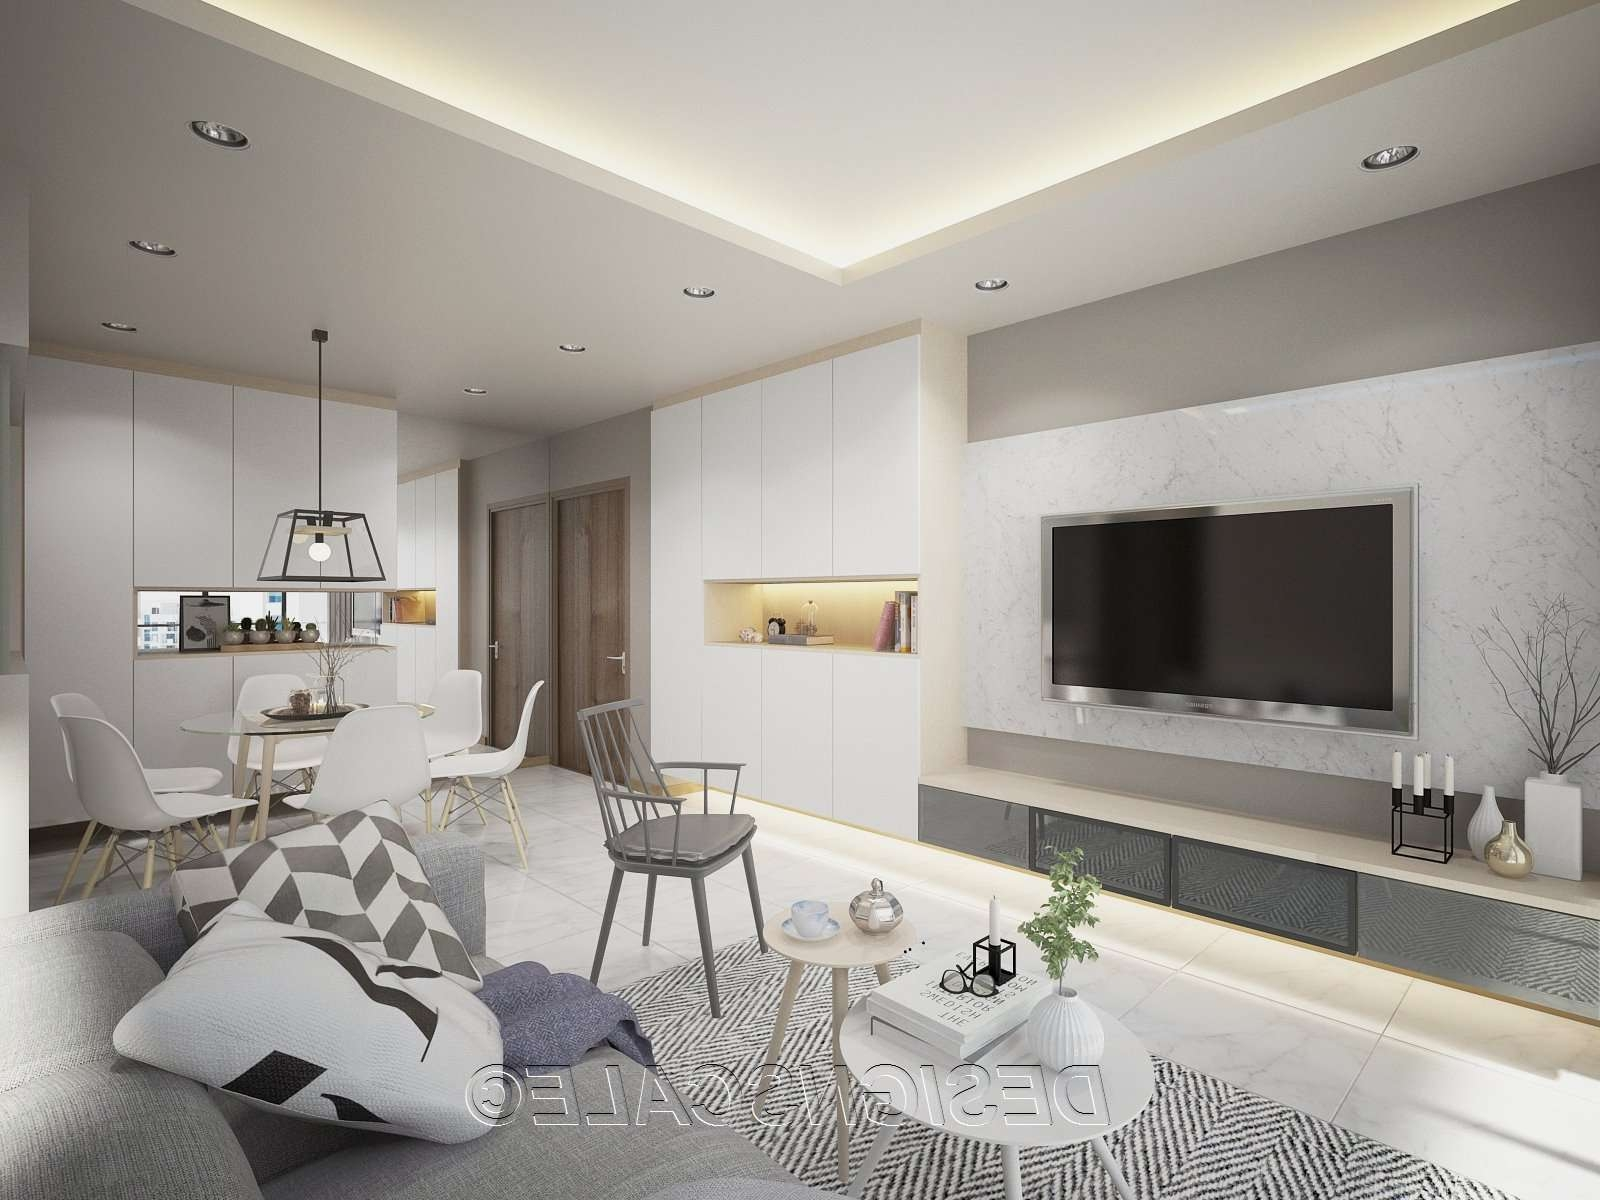 Spacious Scandinavian Home With Floating Cabinets Intended For Scandinavian Design Tv Cabinets (View 11 of 20)